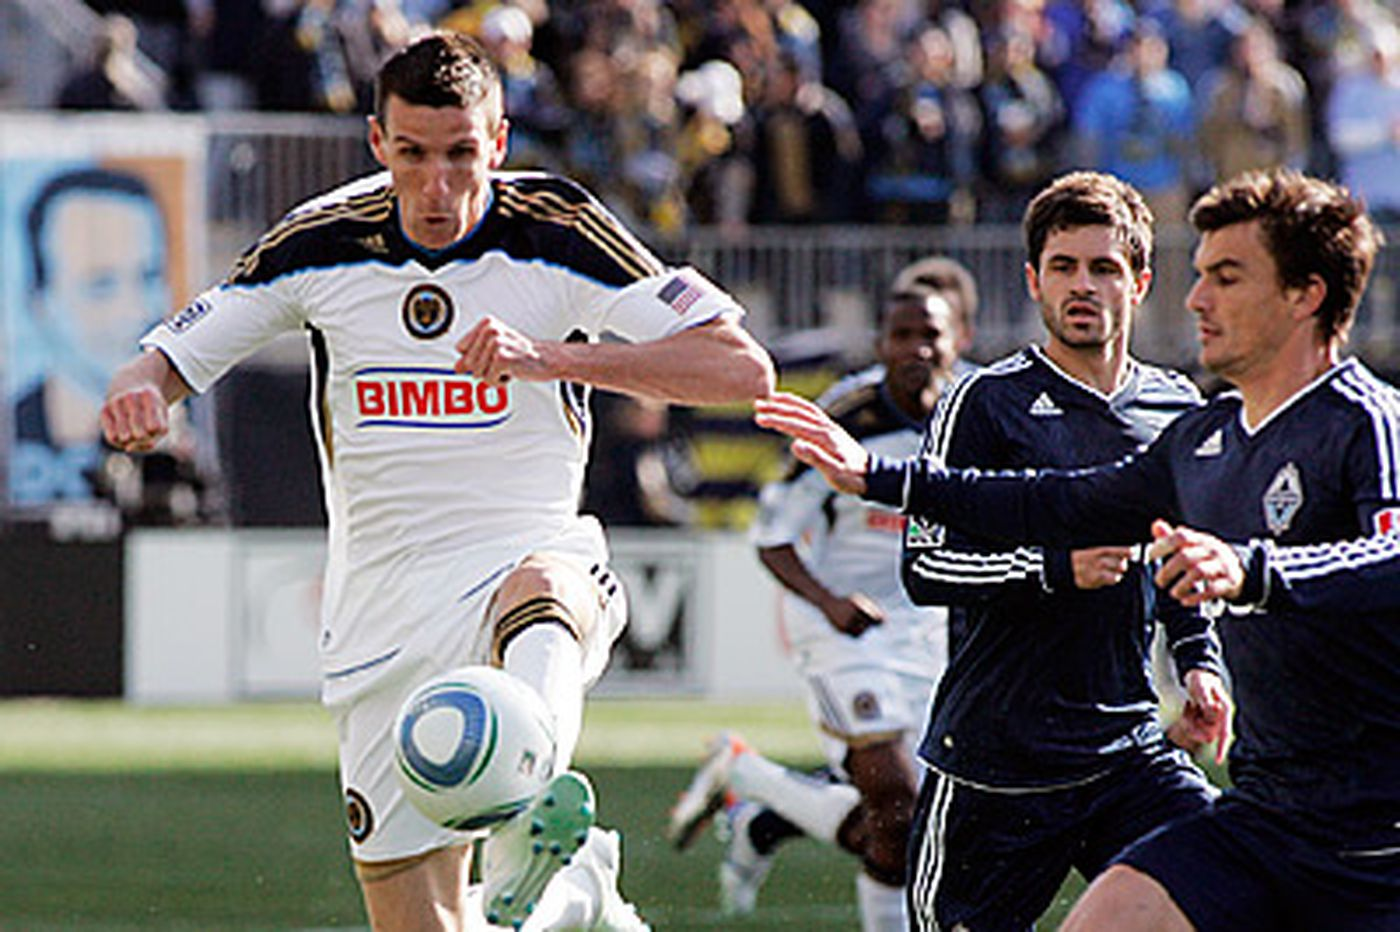 Back-to-back road wins give Union confidence